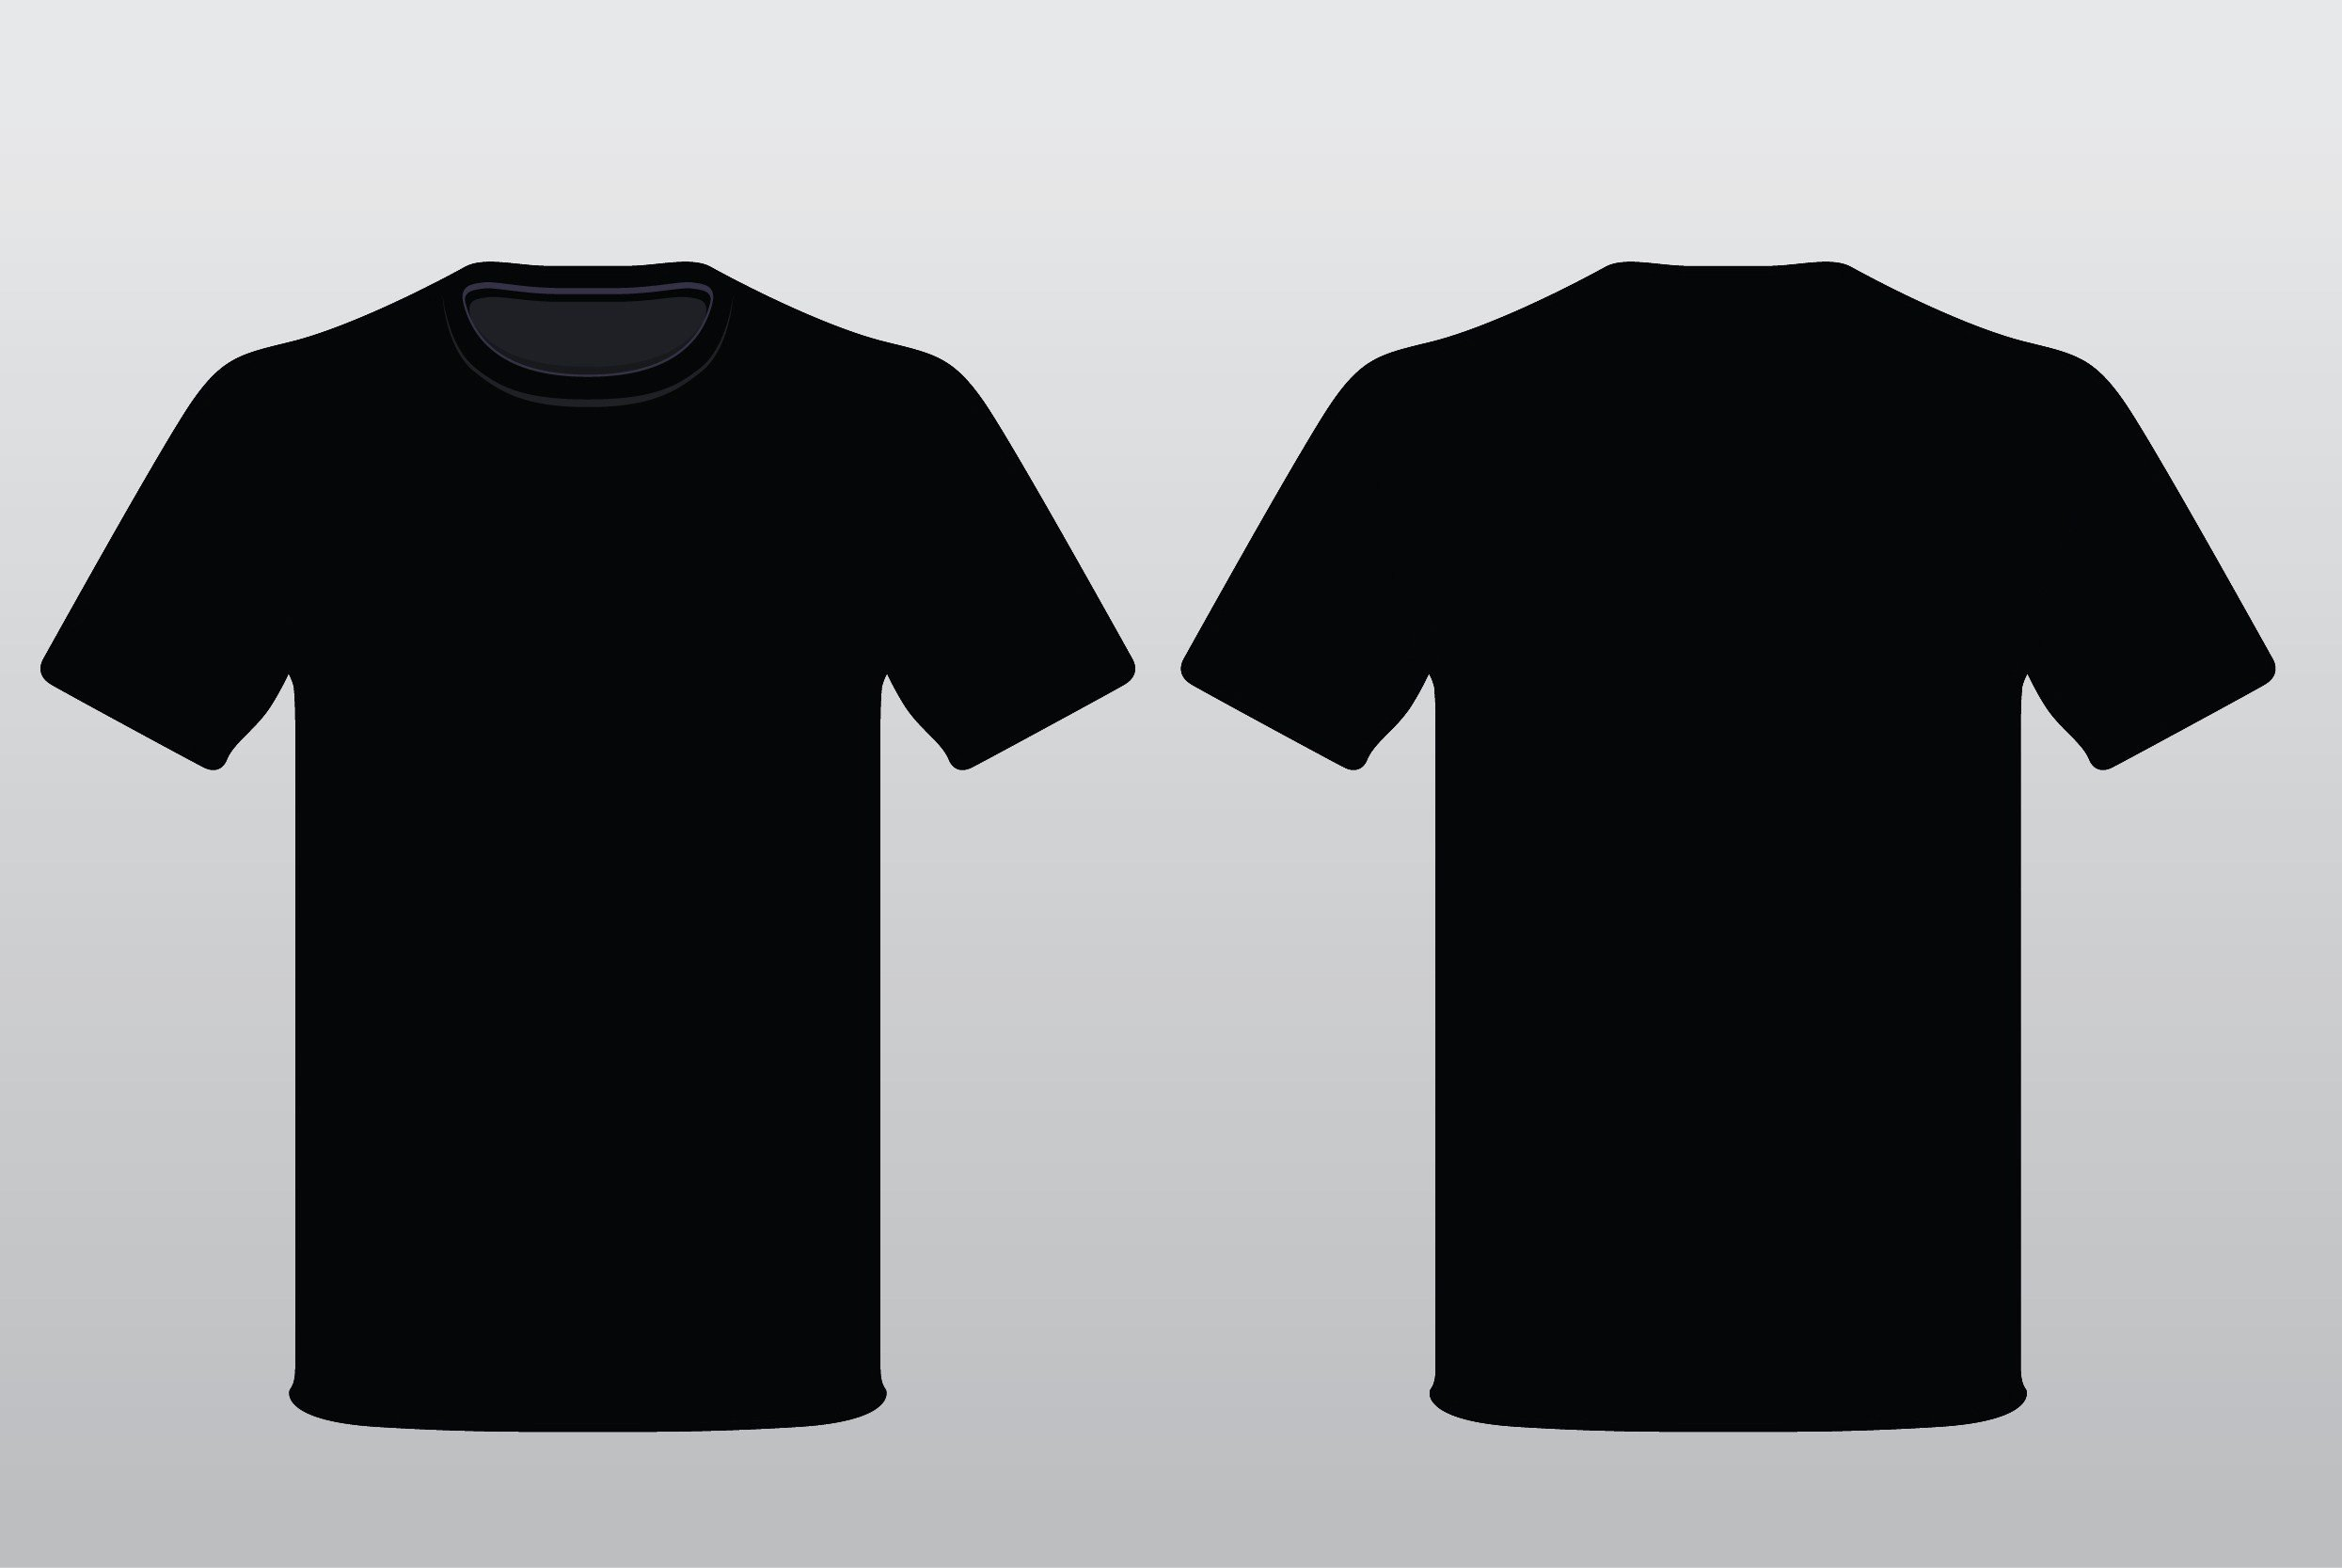 T Shirt Template Design All Over Print T Shirt Design Templates